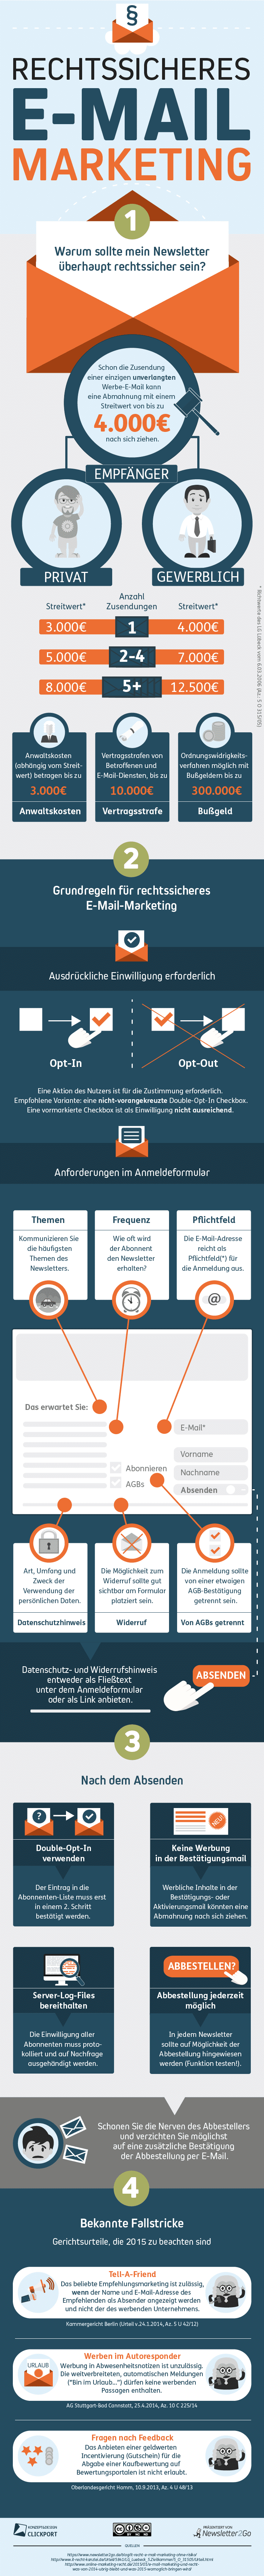 Rechtssicheres Email-Marketing - Infografik